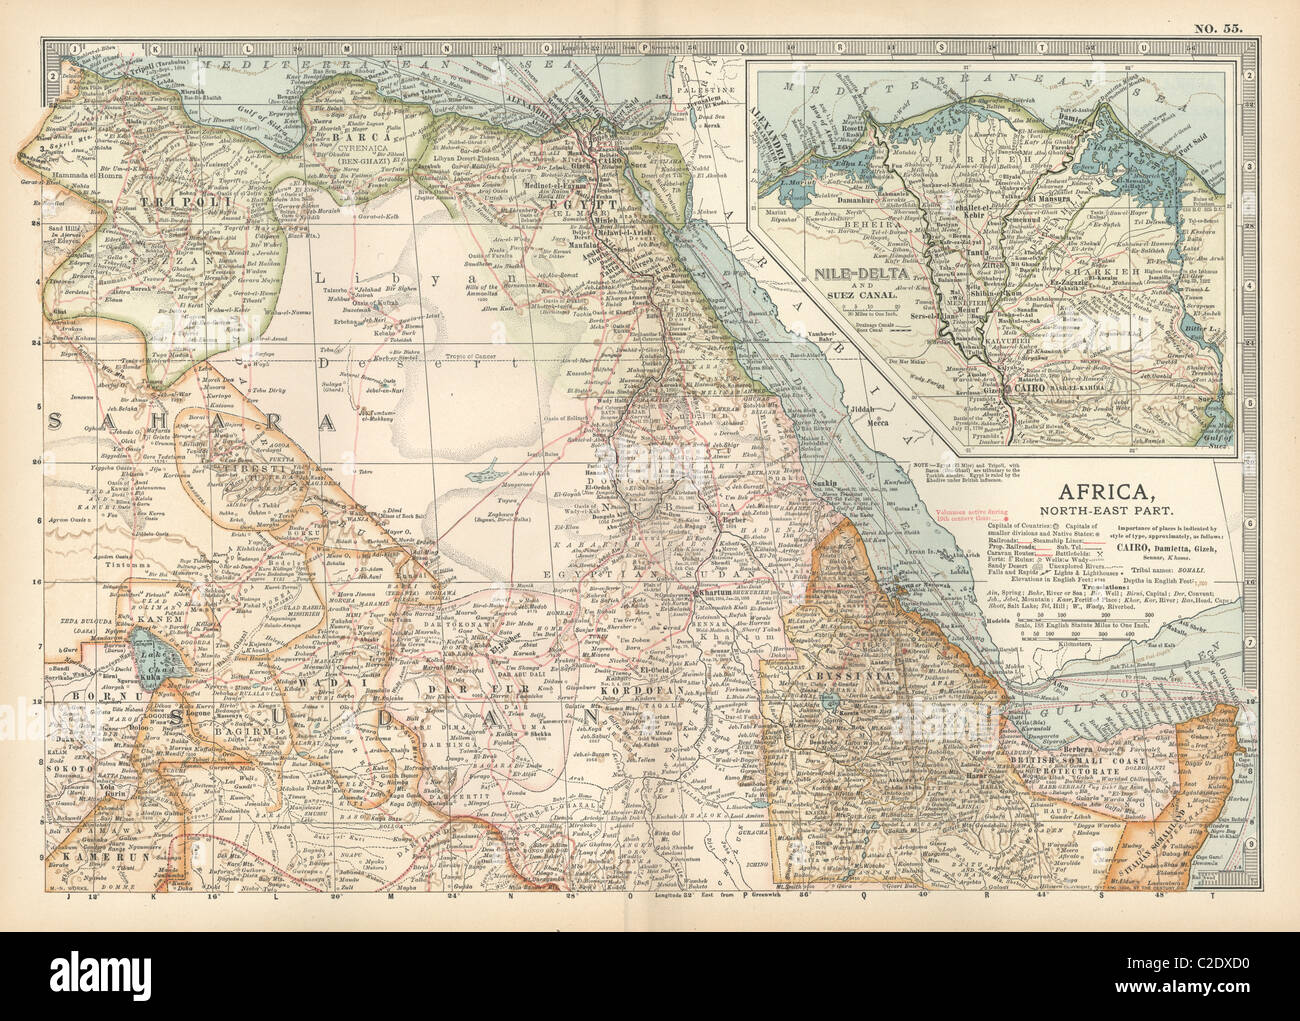 Map of northeastern Africa - Stock Image